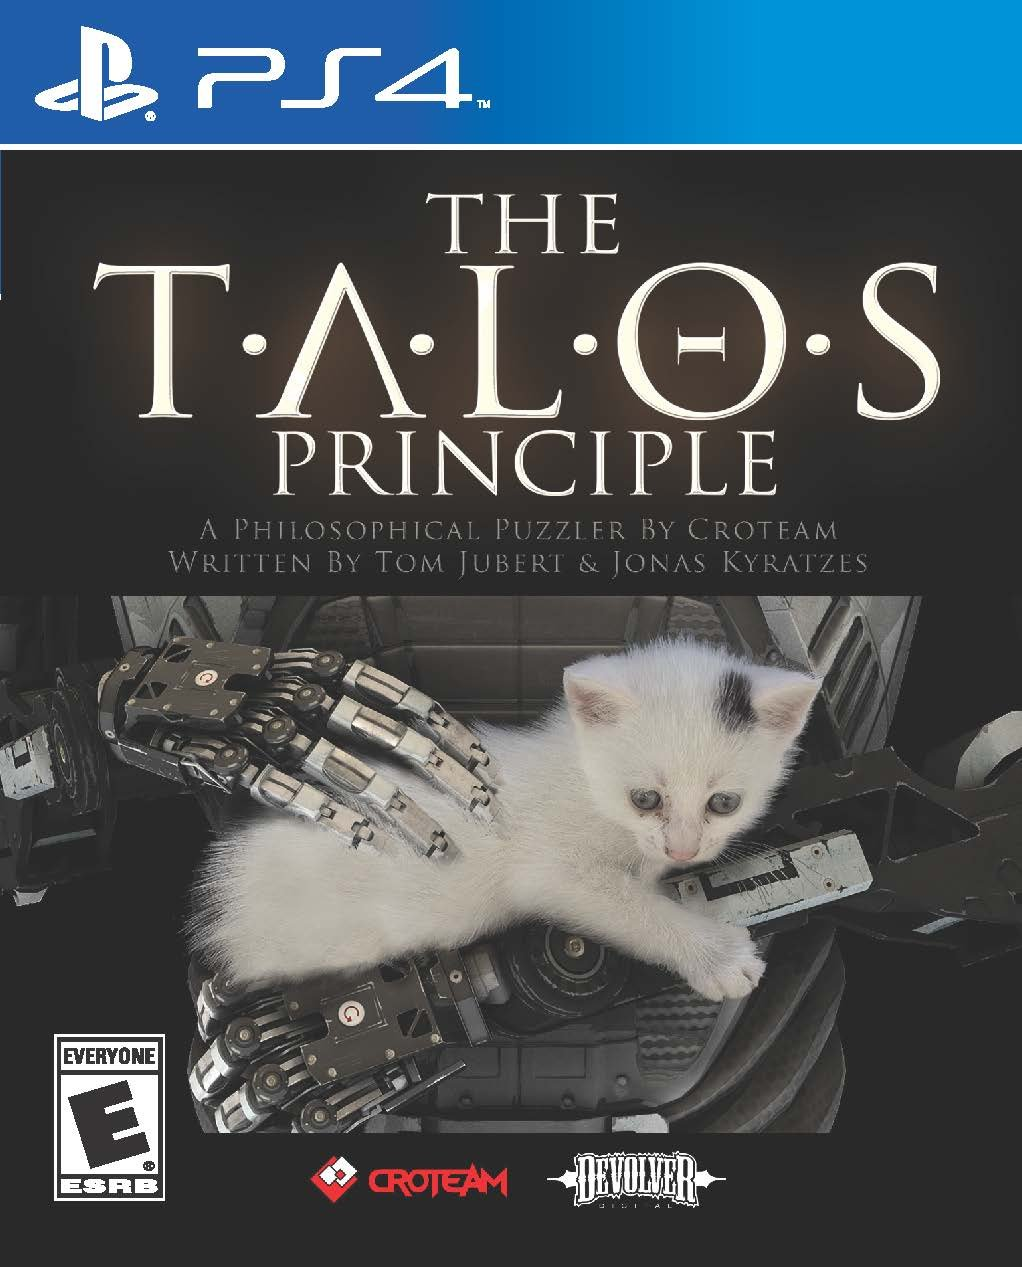 The Talos Principle Confirmed For Physical PS4 Release